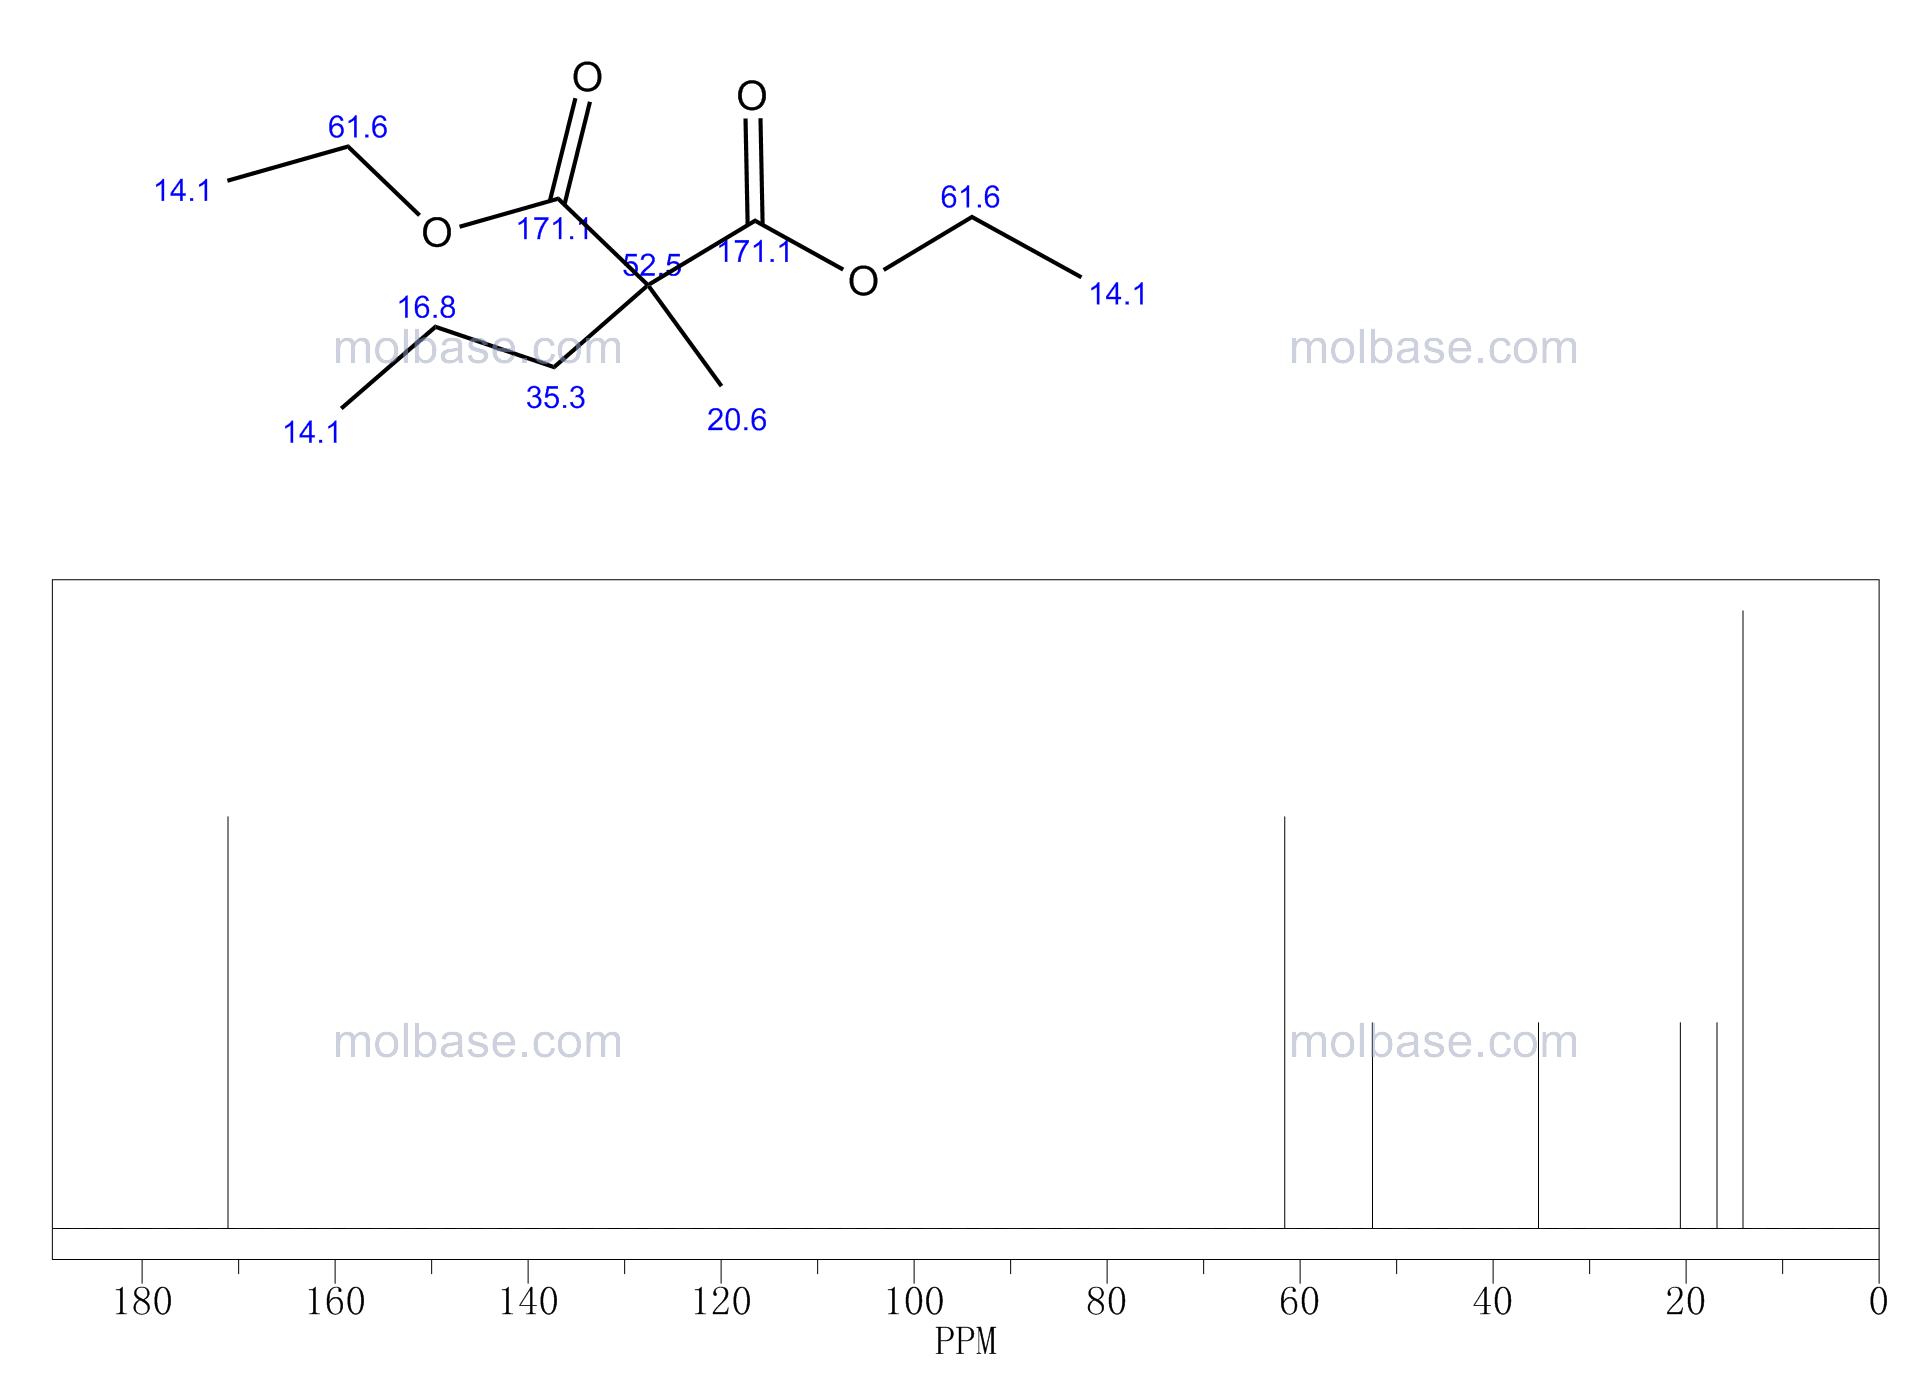 Diethyl 2-Methyl-2-propylmalonate NMR spectra analysis, Chemical CAS NO. 55898-43-6 NMR spectral analysis, Diethyl 2-Methyl-2-propylmalonate C-NMR spectrum